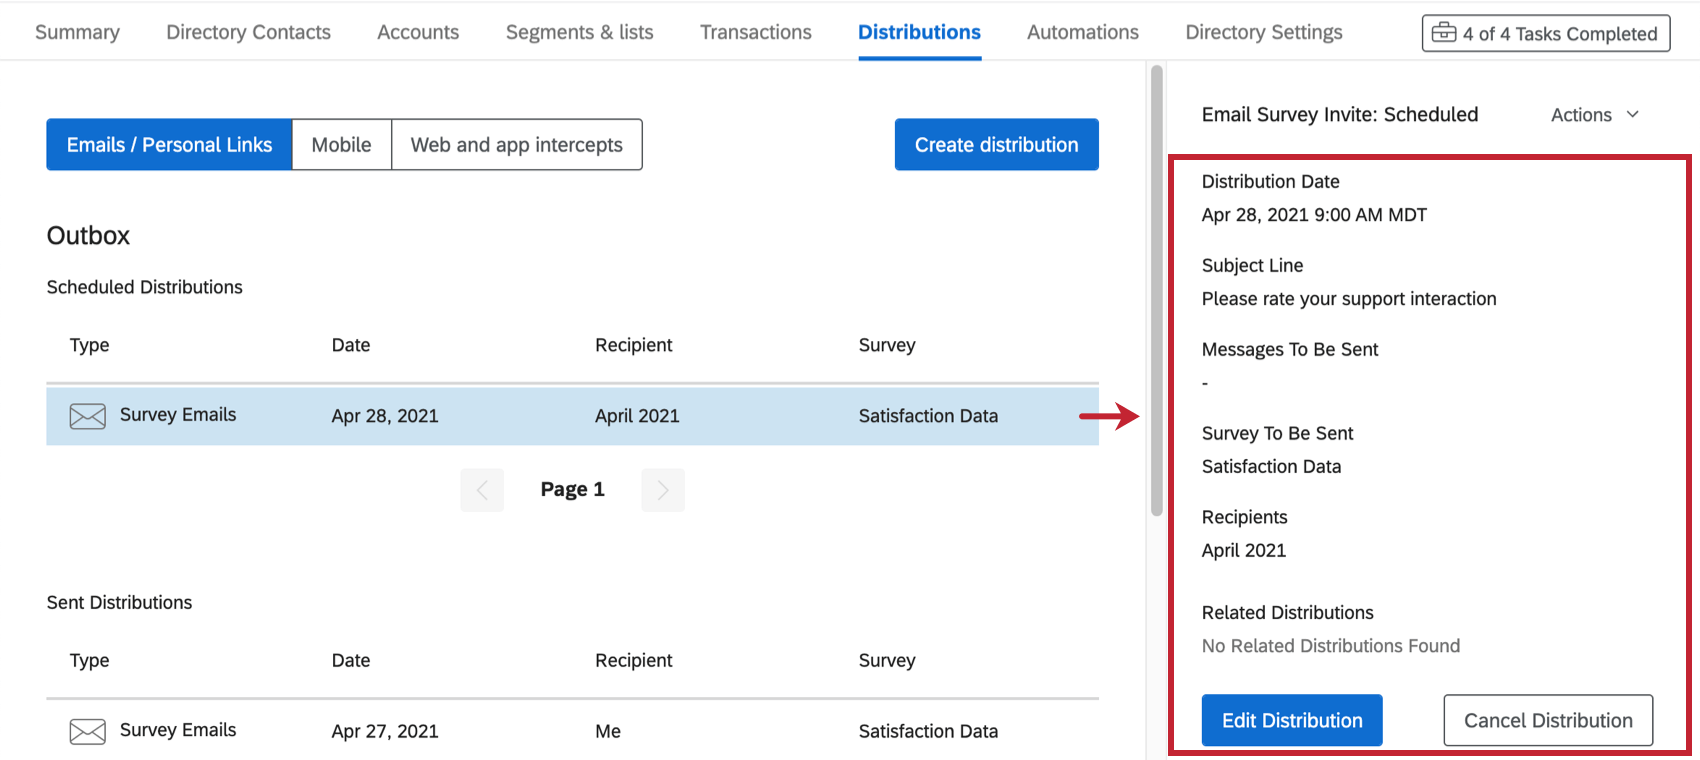 Clicking a distribution makes more information appear to the right